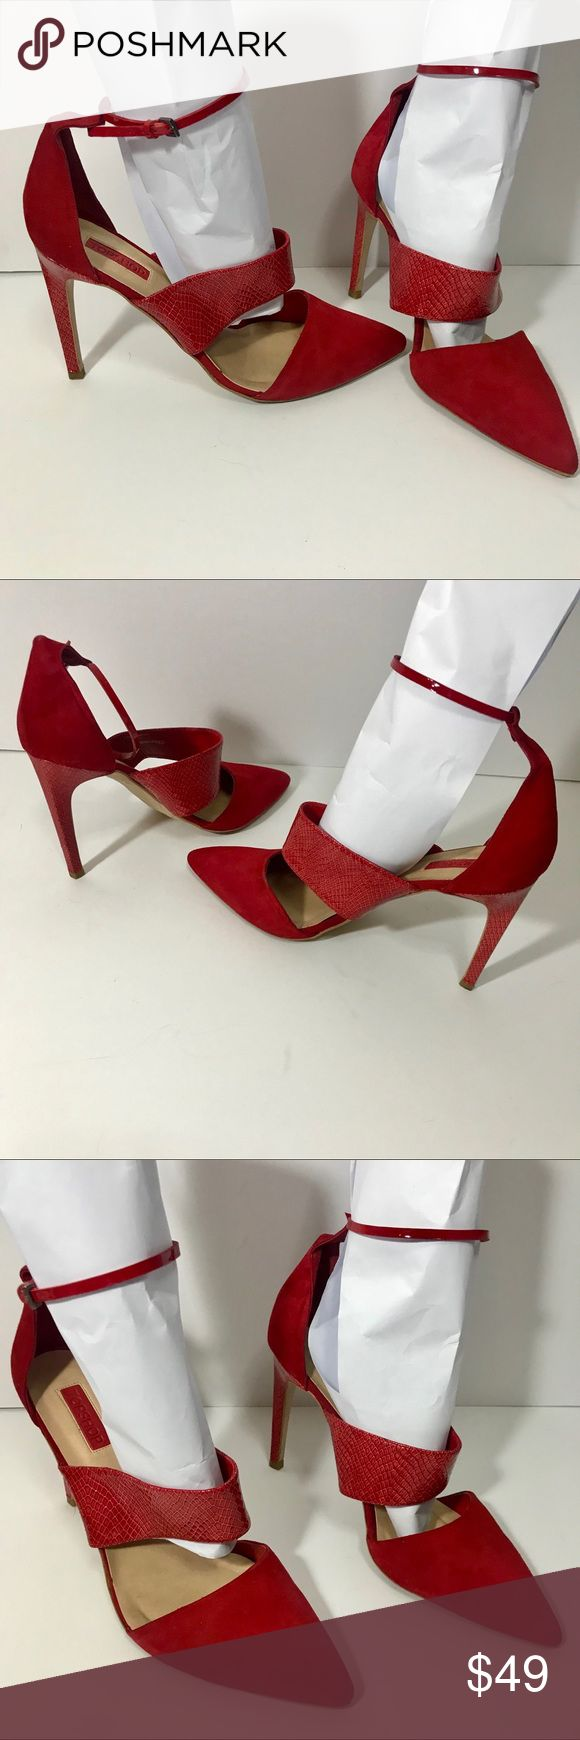 TOPSHOP ANKLE STRAP SUEDE HEELS RED SIZE 42 TOPSHOP ANKLE STRAP SUEDE HEELS RED SIZE 42  Sexy red ankle heels with point toe. Suede and embossed croc leather. Heels are 4 inches.  Worn twice. Wear with skinny jeans, A-Line skirt, or body con dress. Topshop Shoes Heels